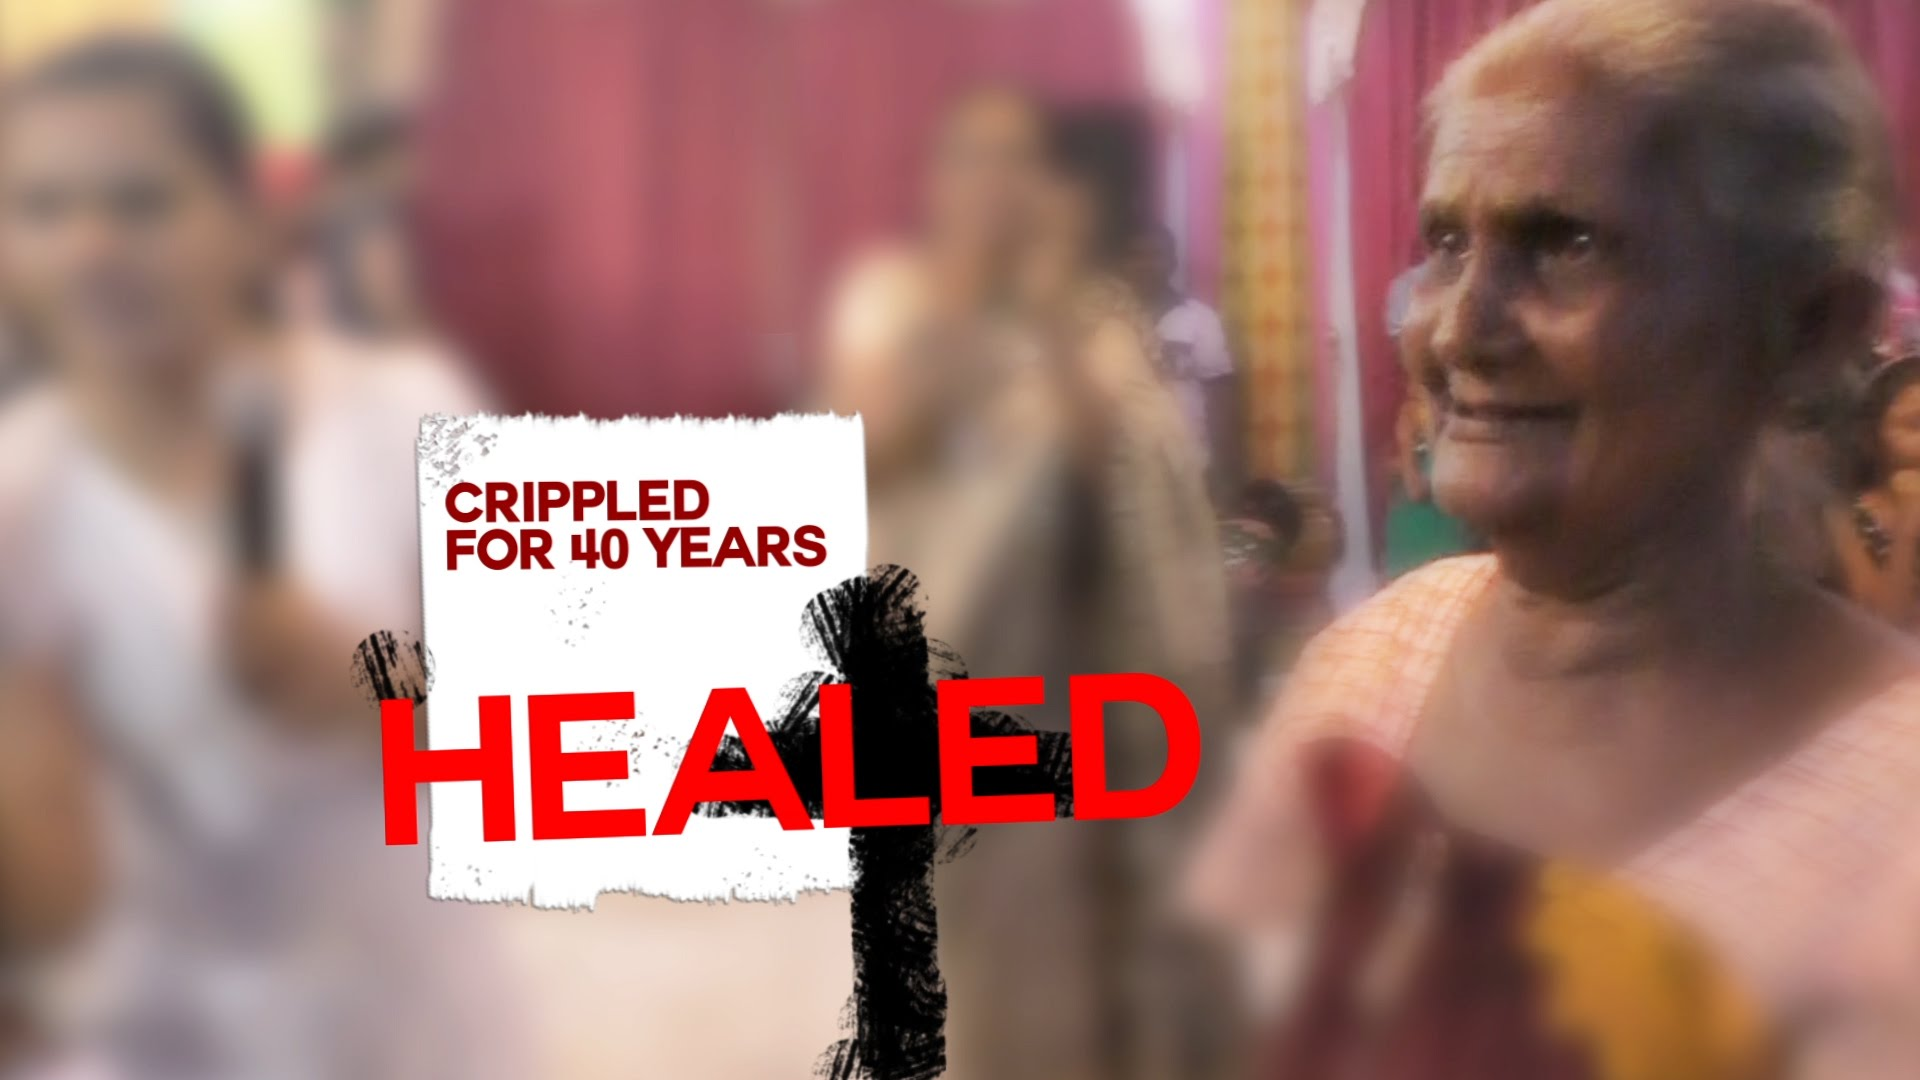 WOW HEALING DIARIES – HEALED AFTER 40 YEARS!